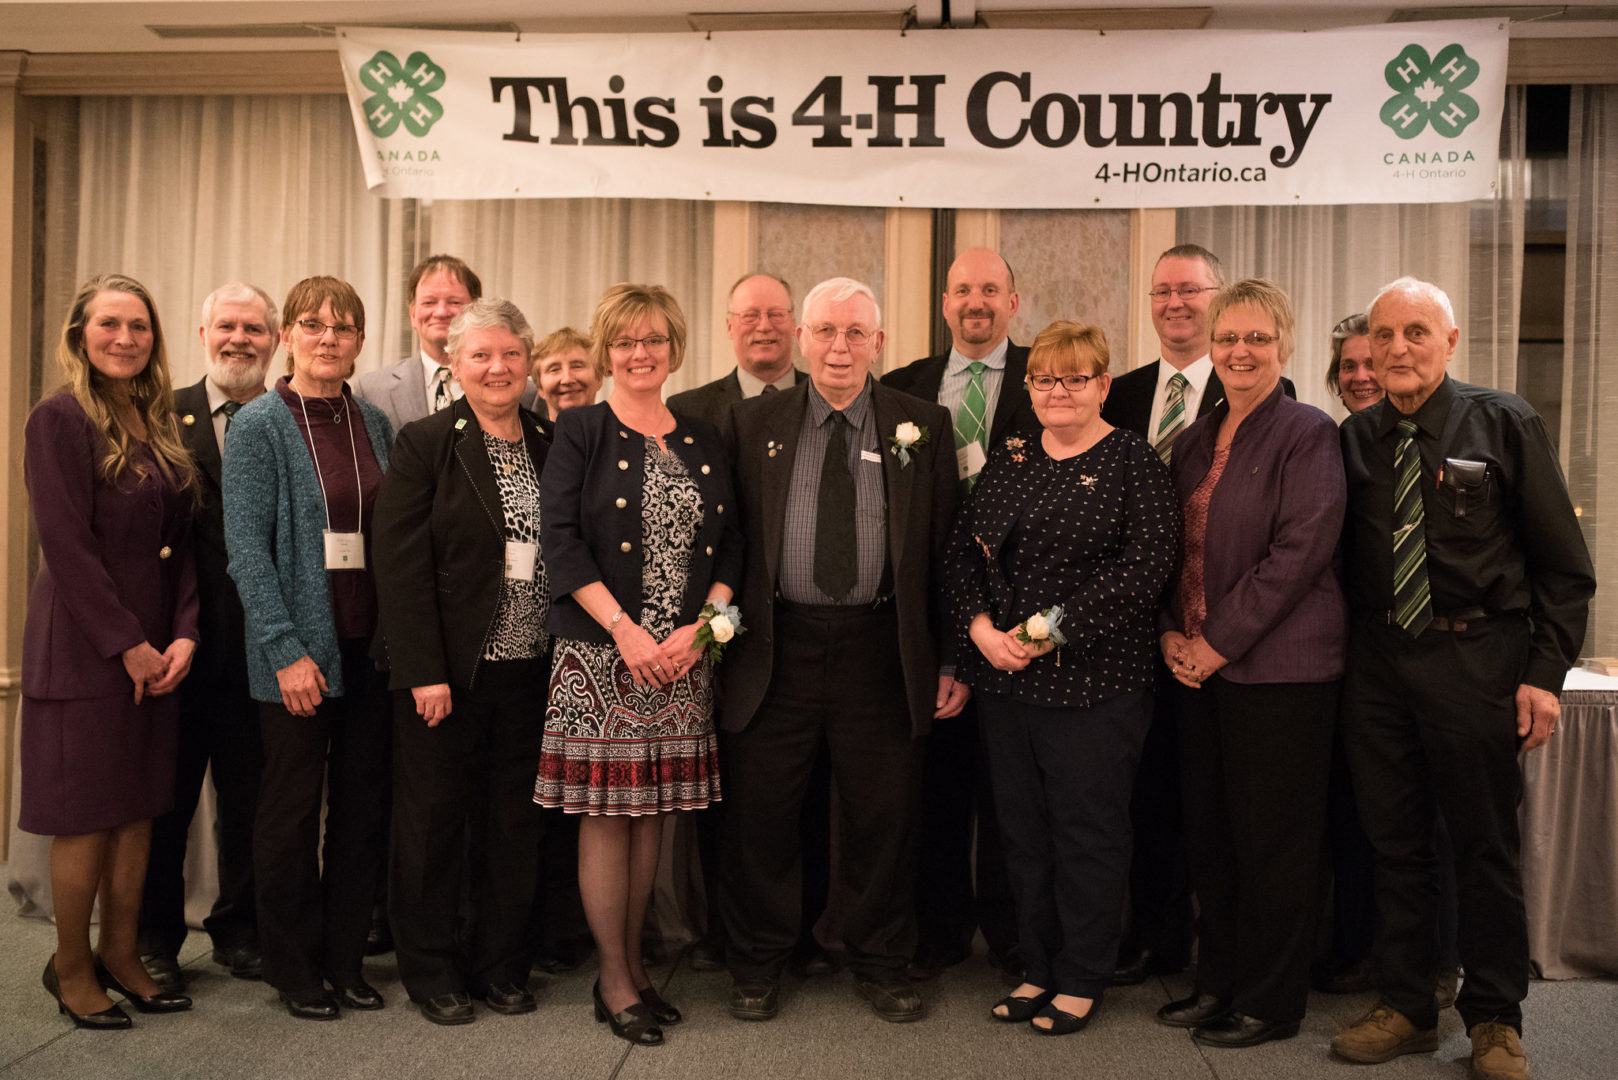 Group of award winners standing on stage in front of 4-H sign